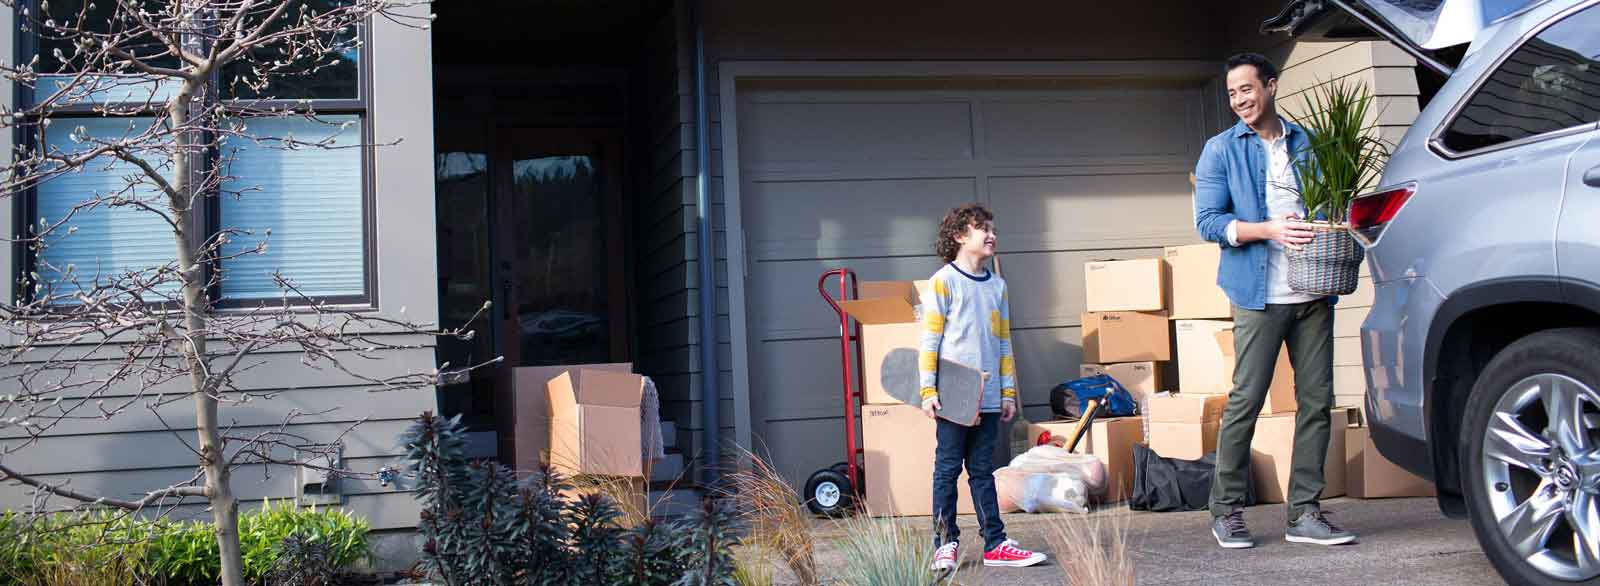 Family moves into new home with financing from Banner Bank home lending